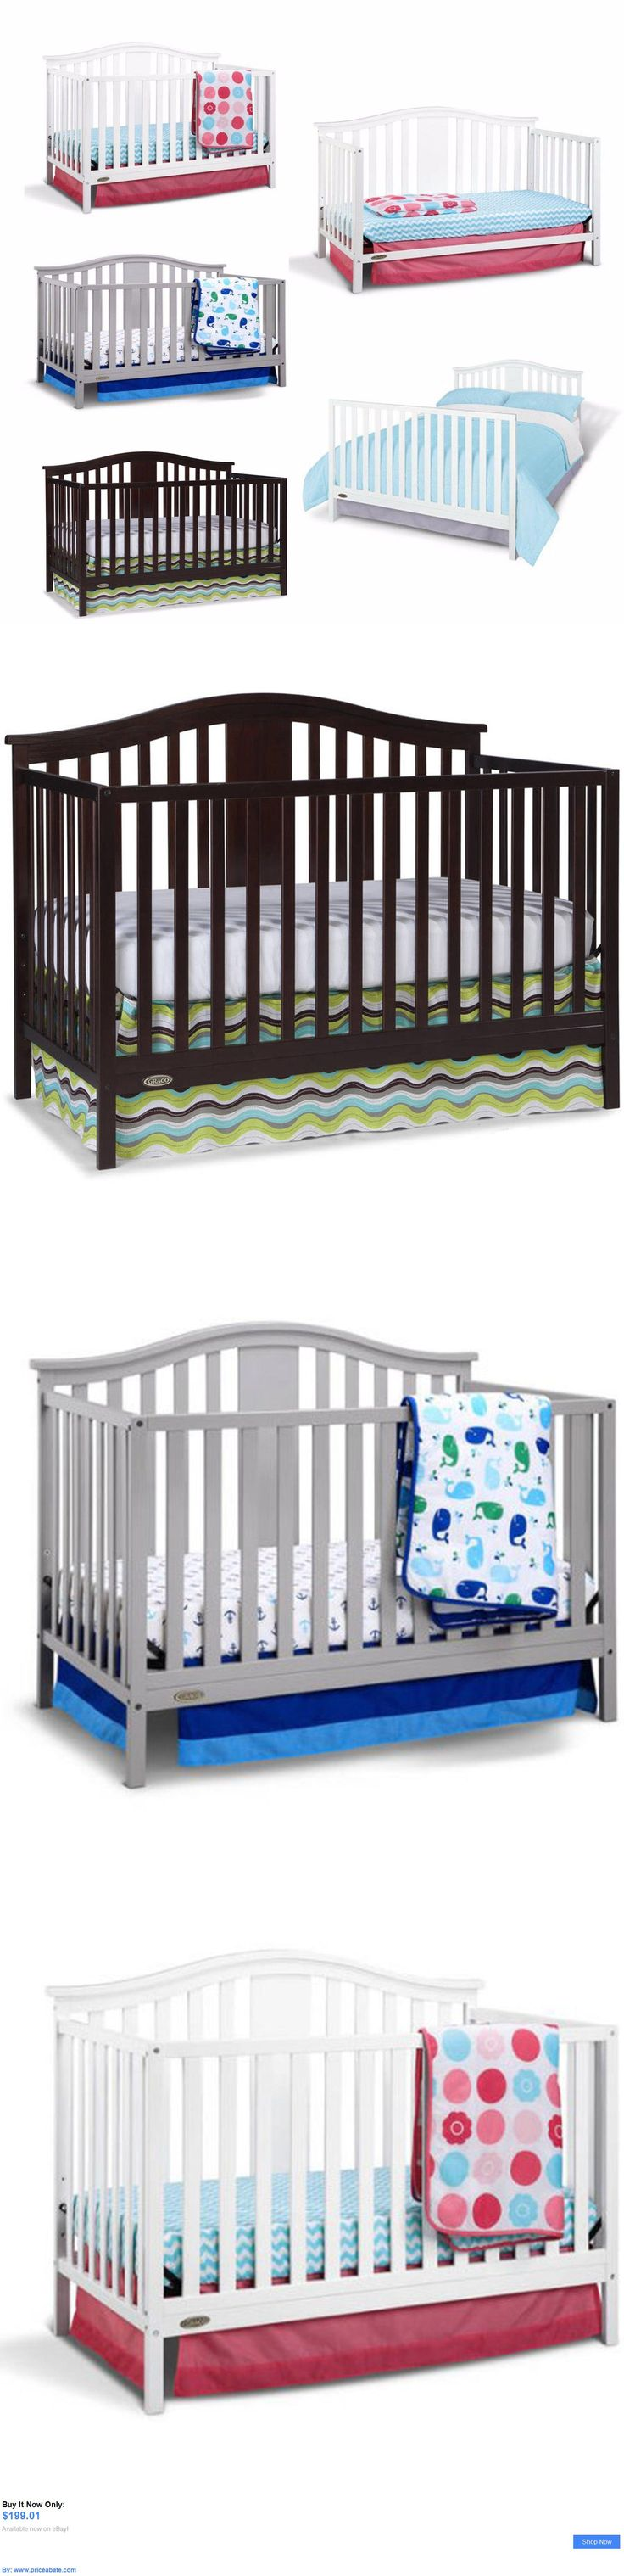 lovely lullaby mattress of crib earth to guide jeseniacoant cribs best amp styles pictures furniture types